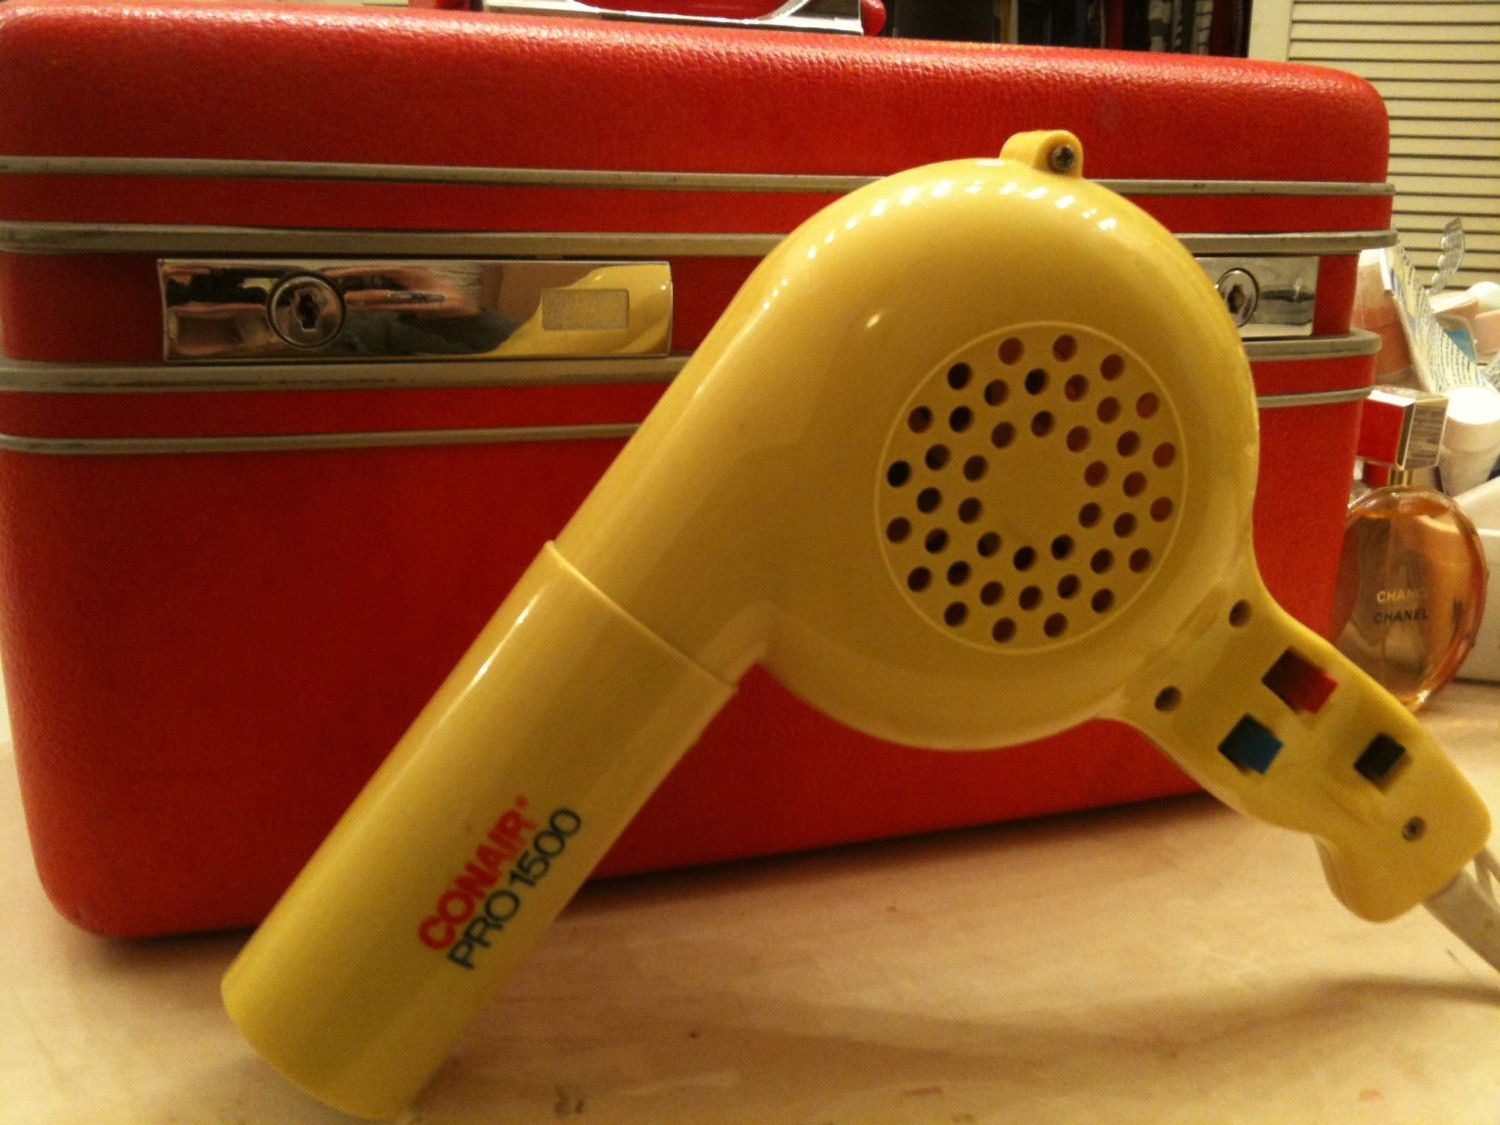 Vintage Conair I Learned To Dry My Hair With One Of These